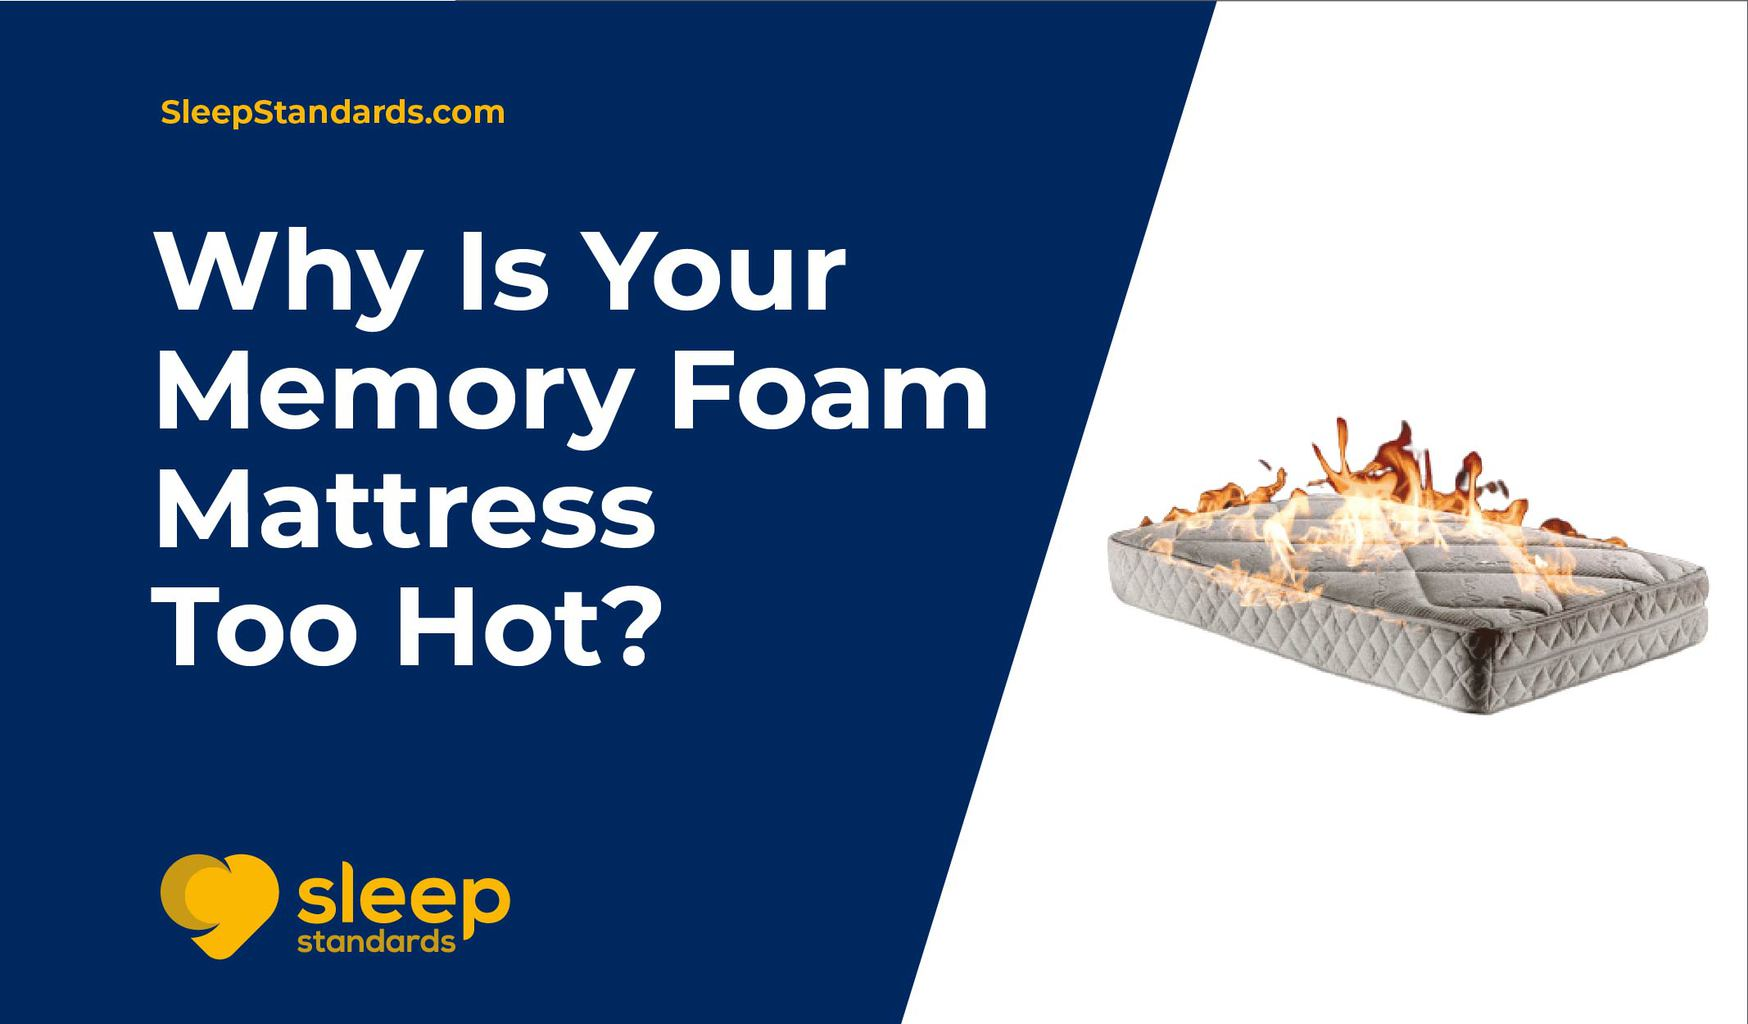 Why Is Your Memory Foam Mattress Too Hot